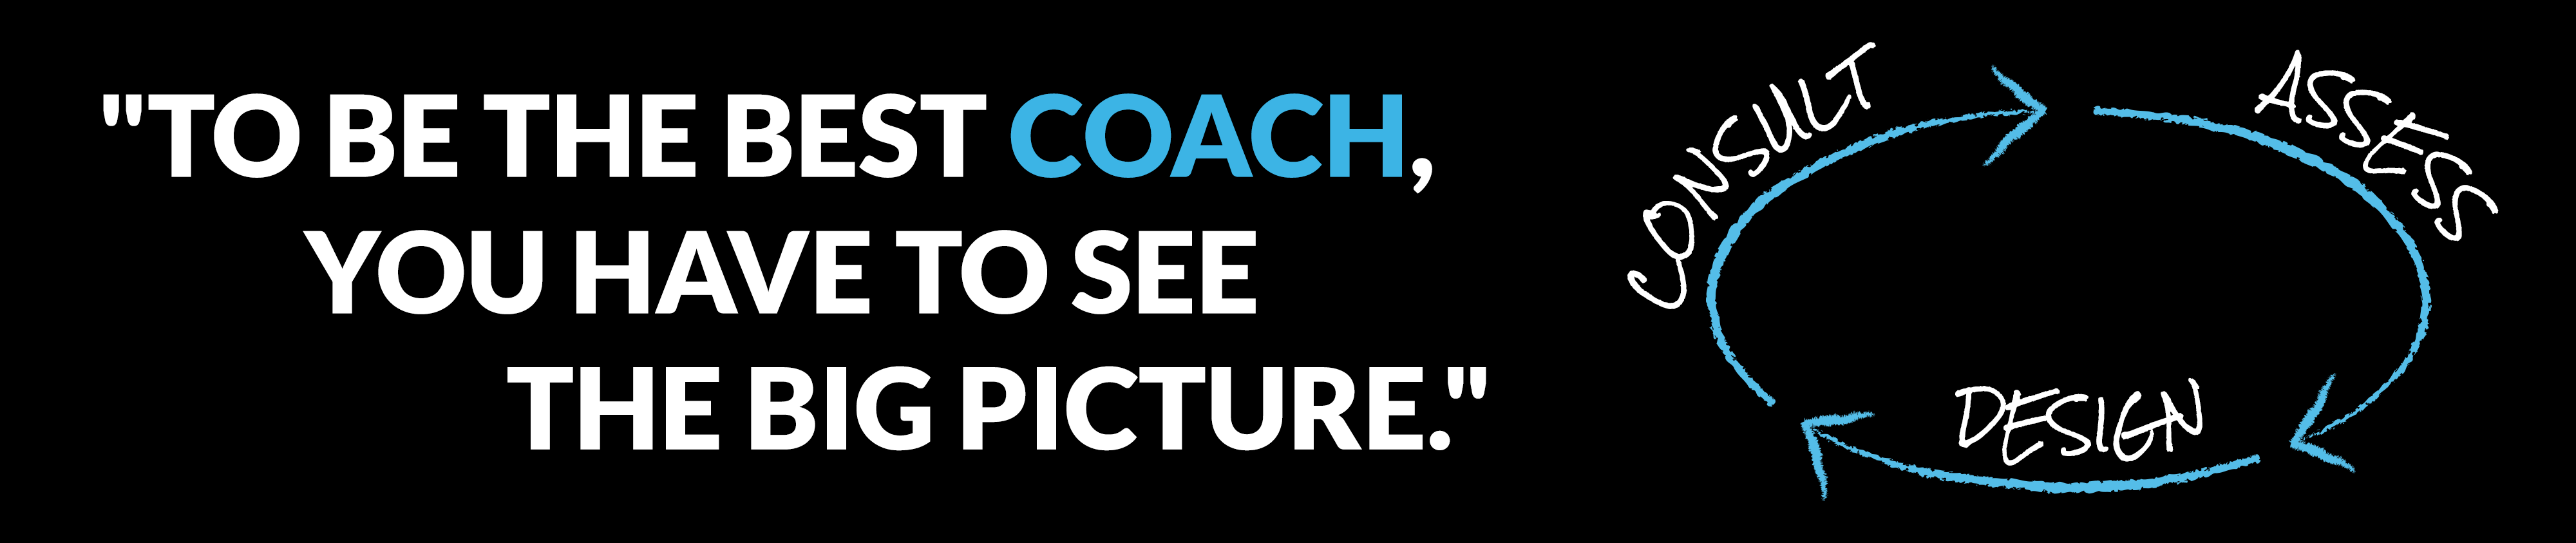 To be the best coach...